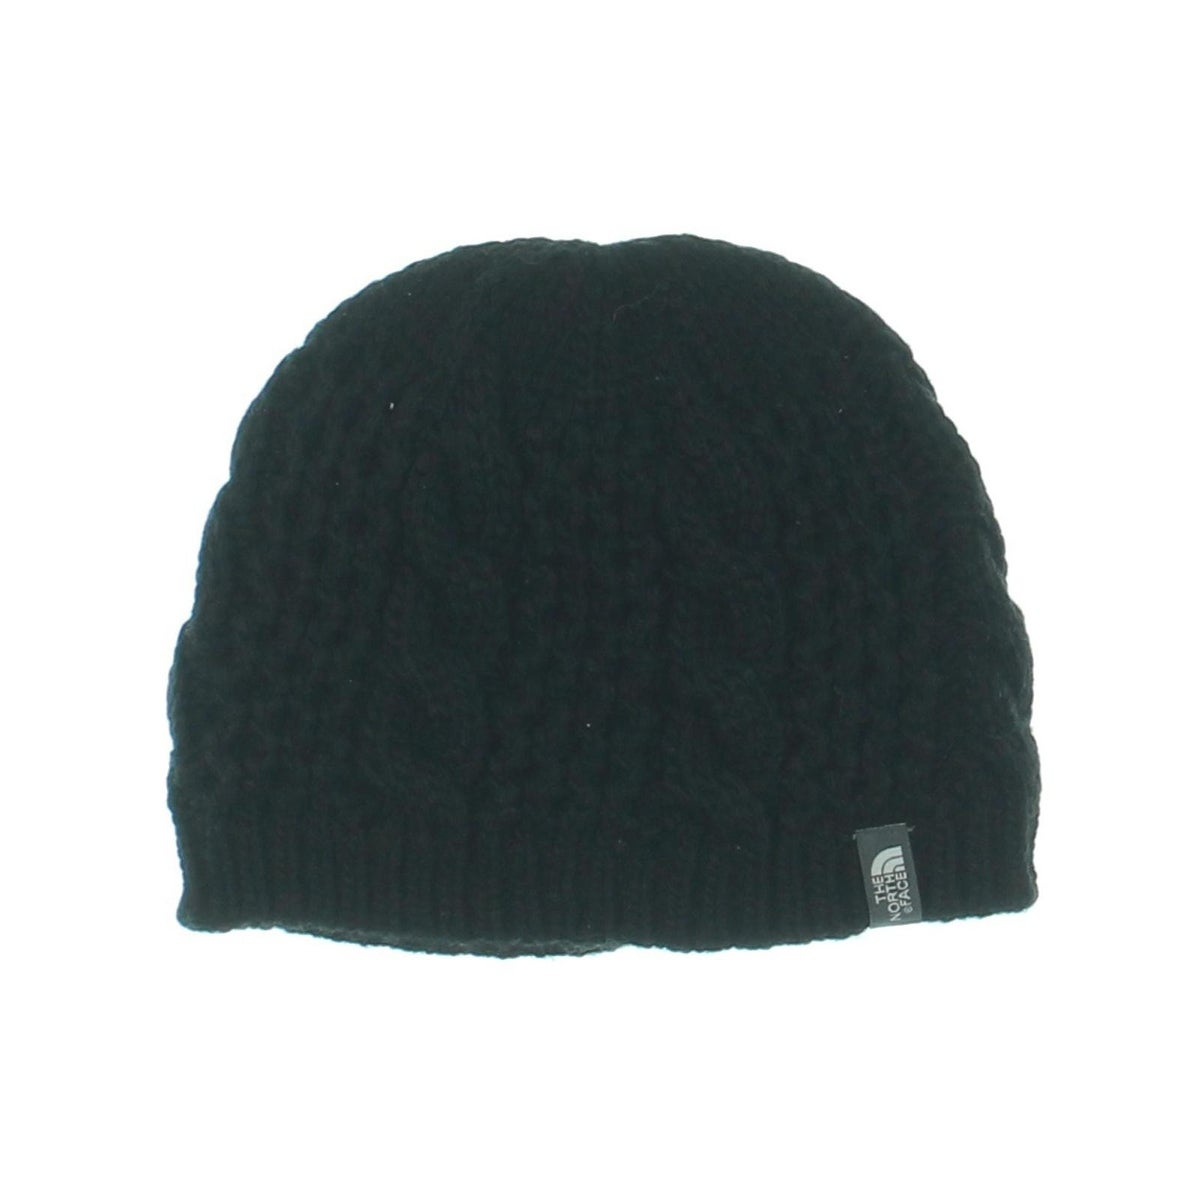 557a3737e The North Face Womens Minna Winter Hat Knit Fleece Lined - o/s